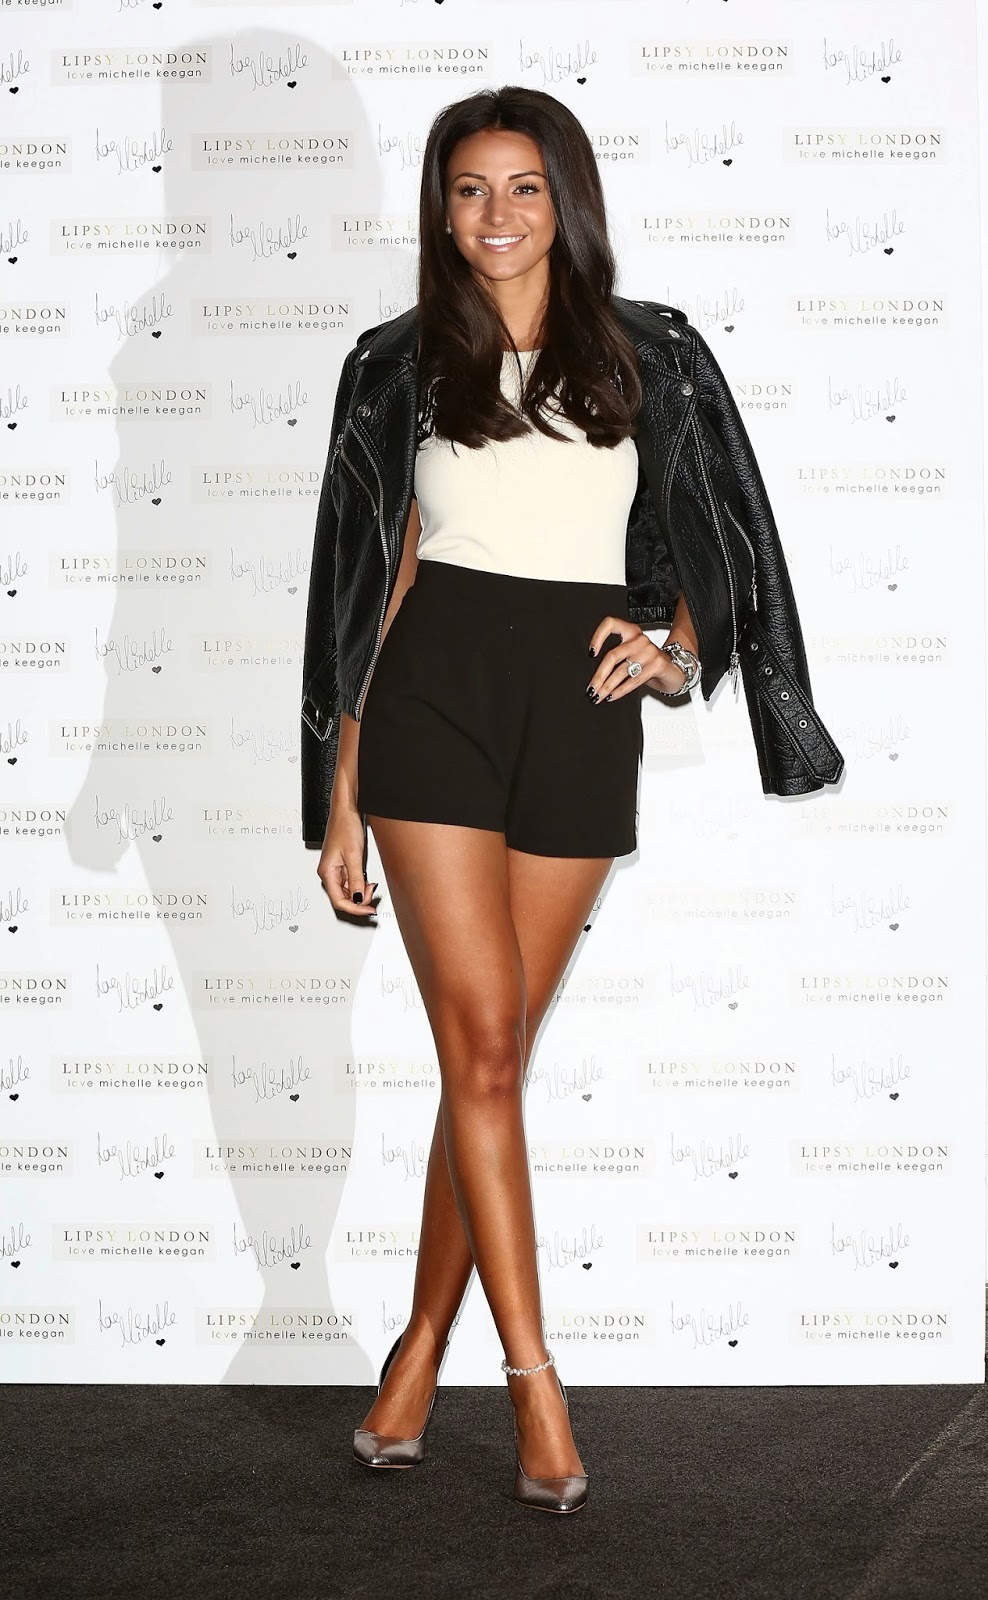 Michelle Keegan's hot legs at 'Lipsy' Photocall at ME Hotel, London